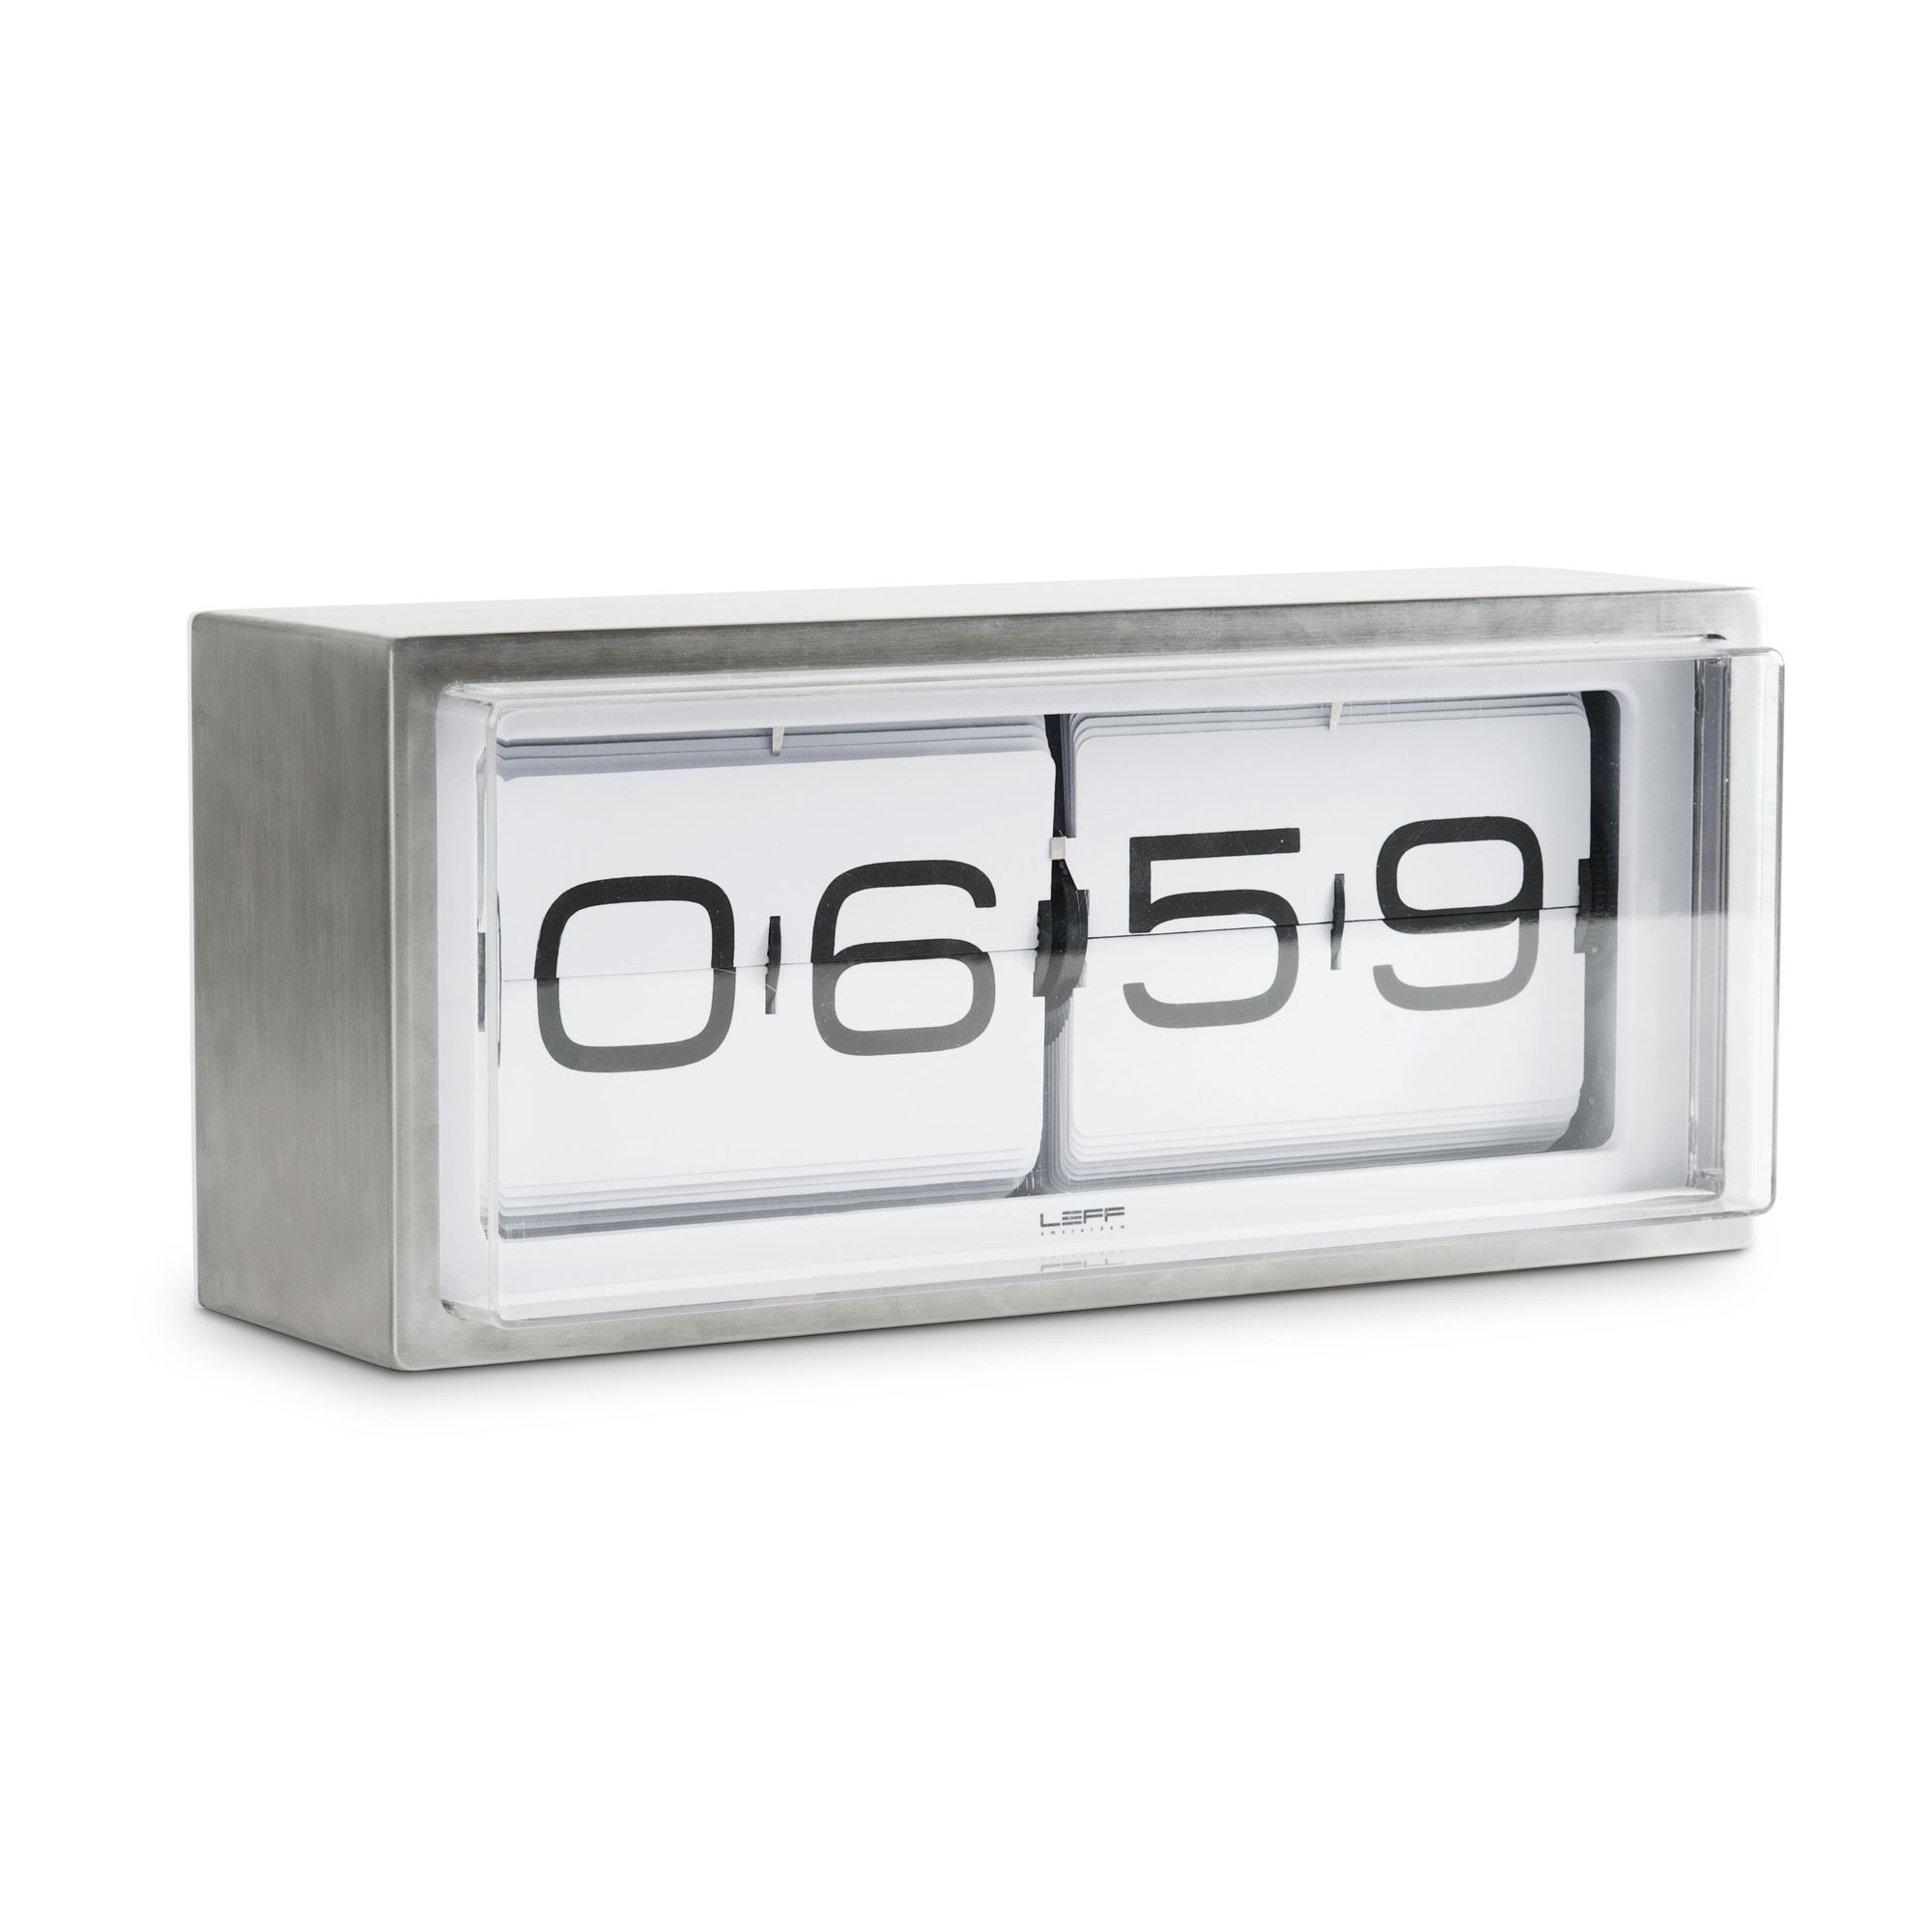 Leff Brick Wall/Desk Clock with White Dial in Grey Stainless Steel - AM/PM at Tesco Direct